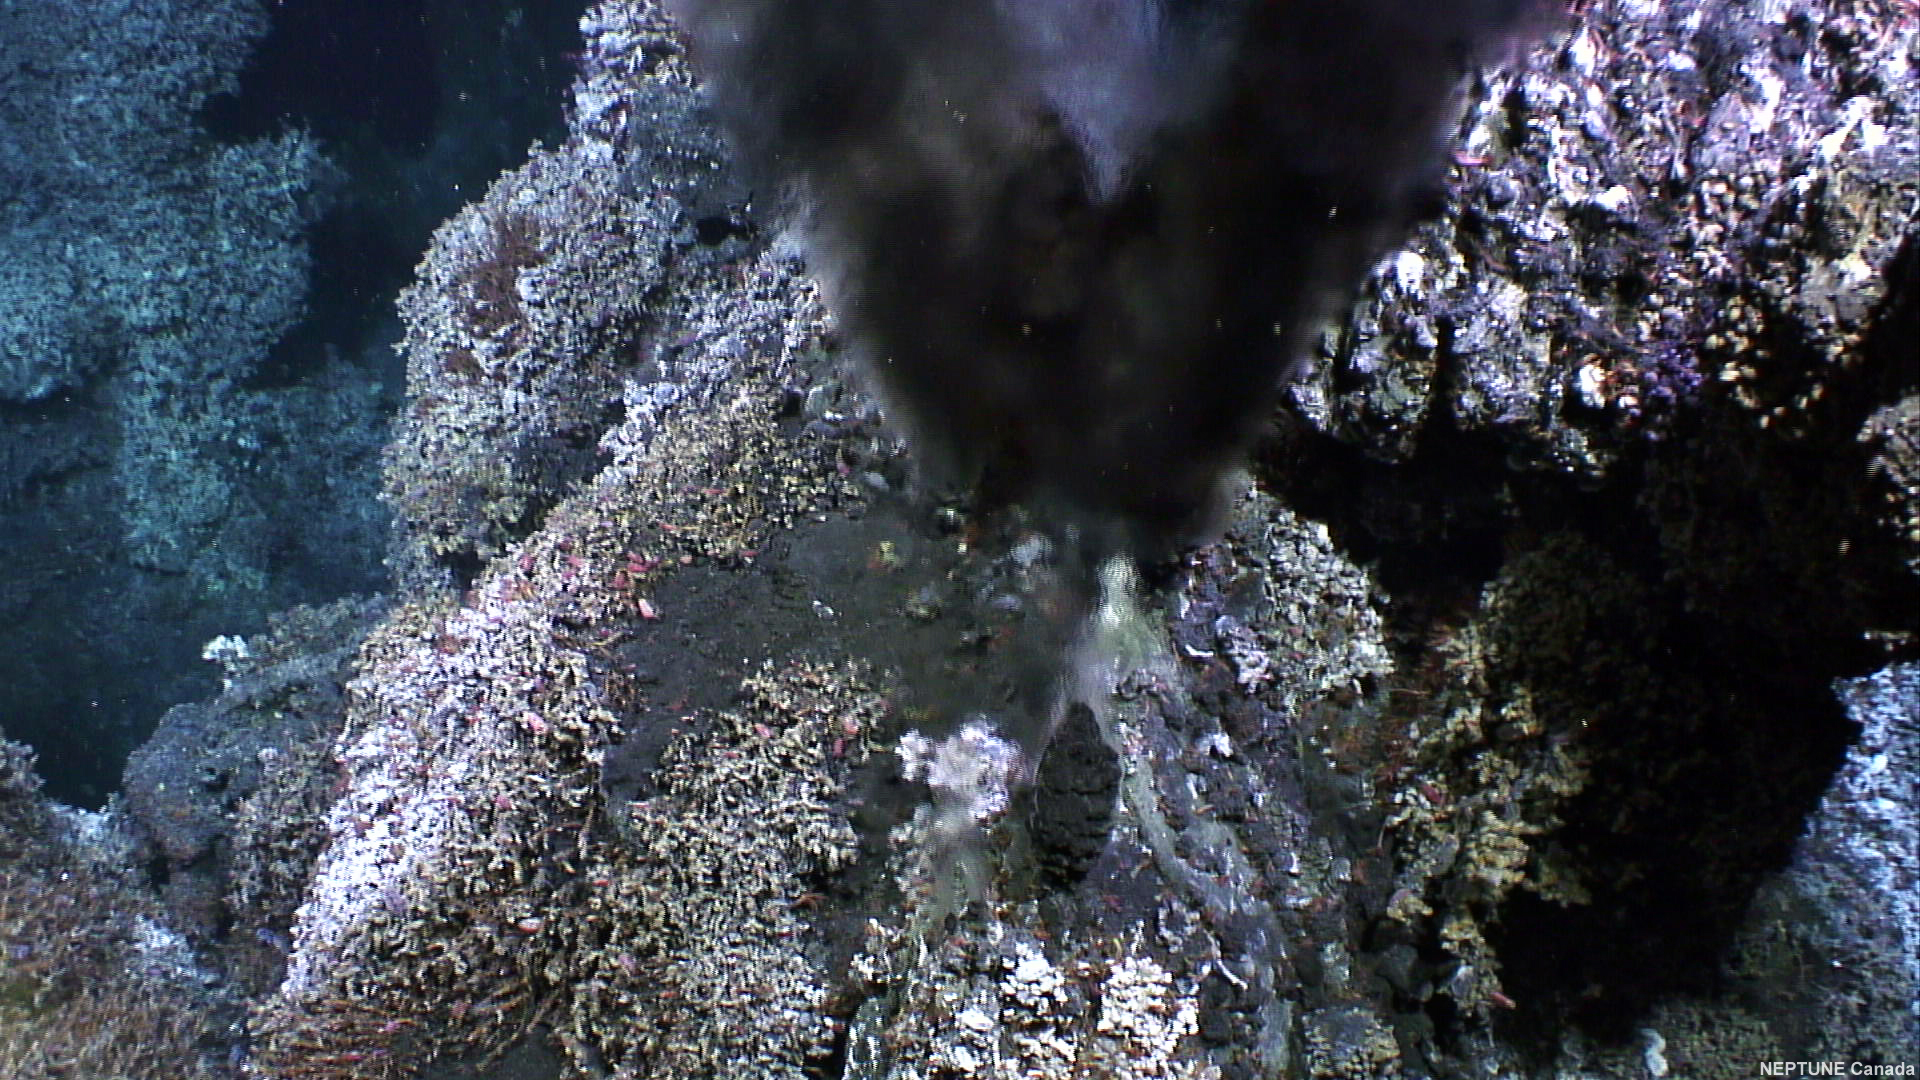 a review of popular deep sea vents Volcanoes of the deep sea blu-ray  see volcanoes of the deep sea blu-ray review published by casey broadwater on january  most popular blu-ray movie deals.